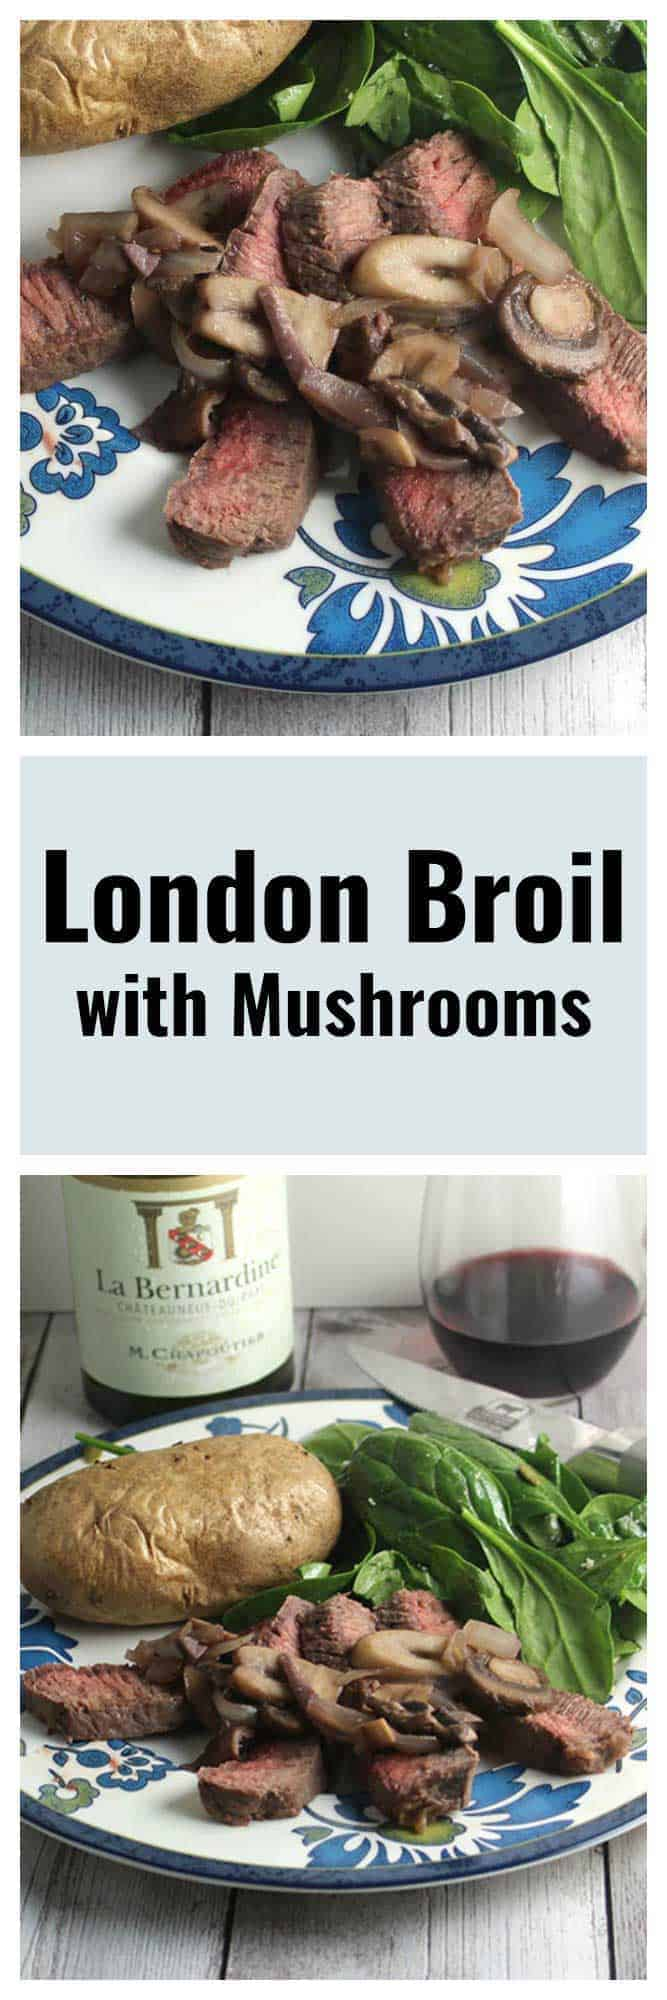 Two images of London broil steak with mushrooms